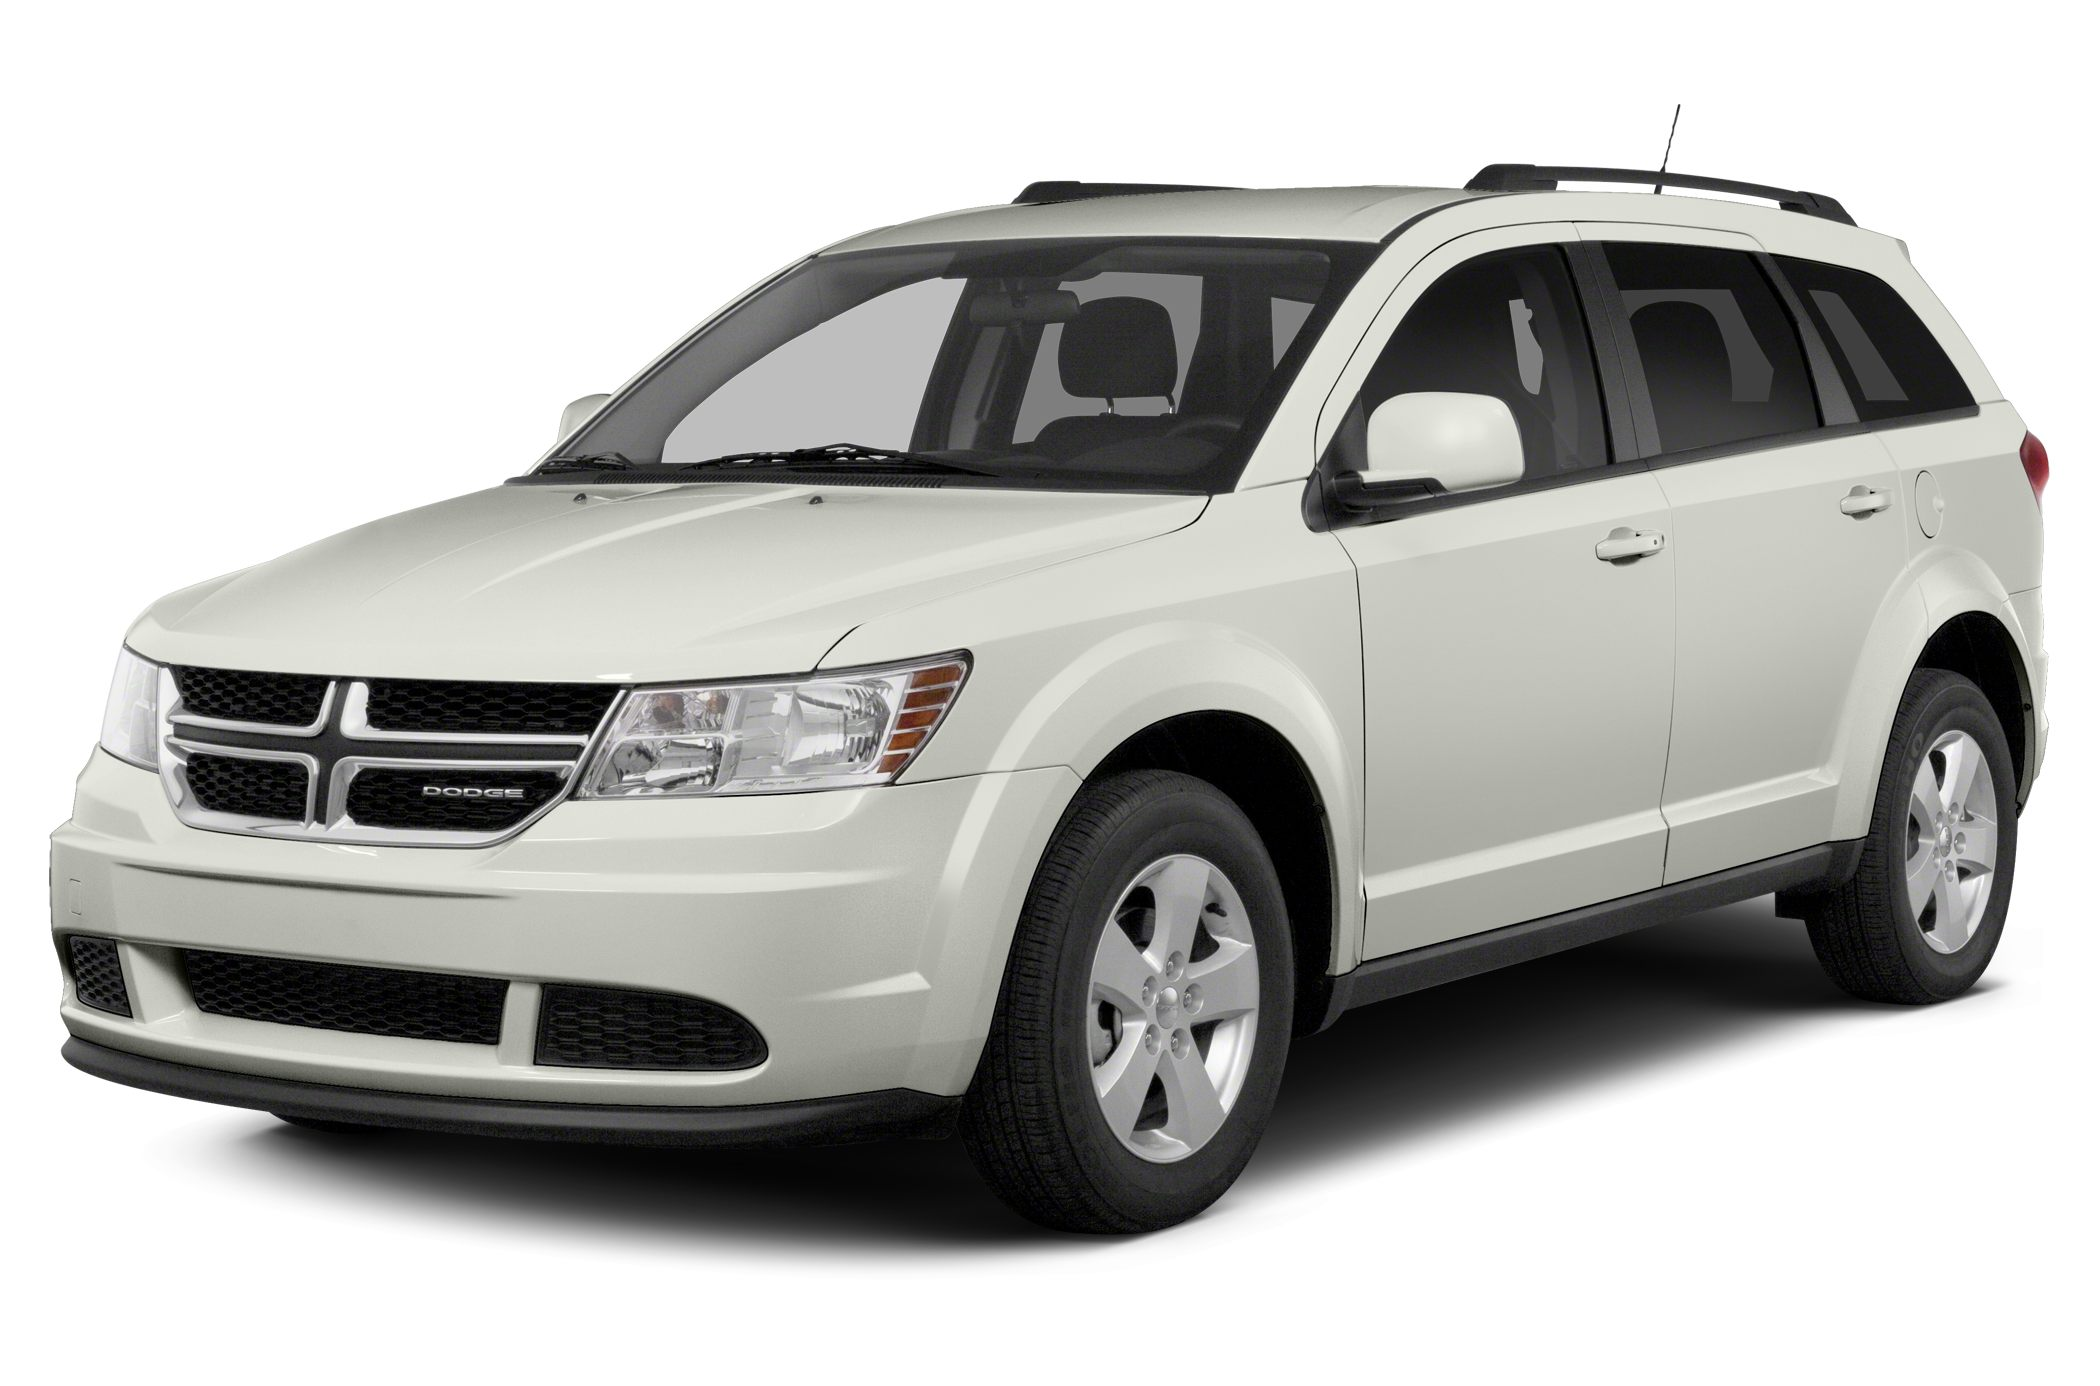 2014 Dodge Journey SXT SUV for sale in Pine Bluff for $21,000 with 33,841 miles